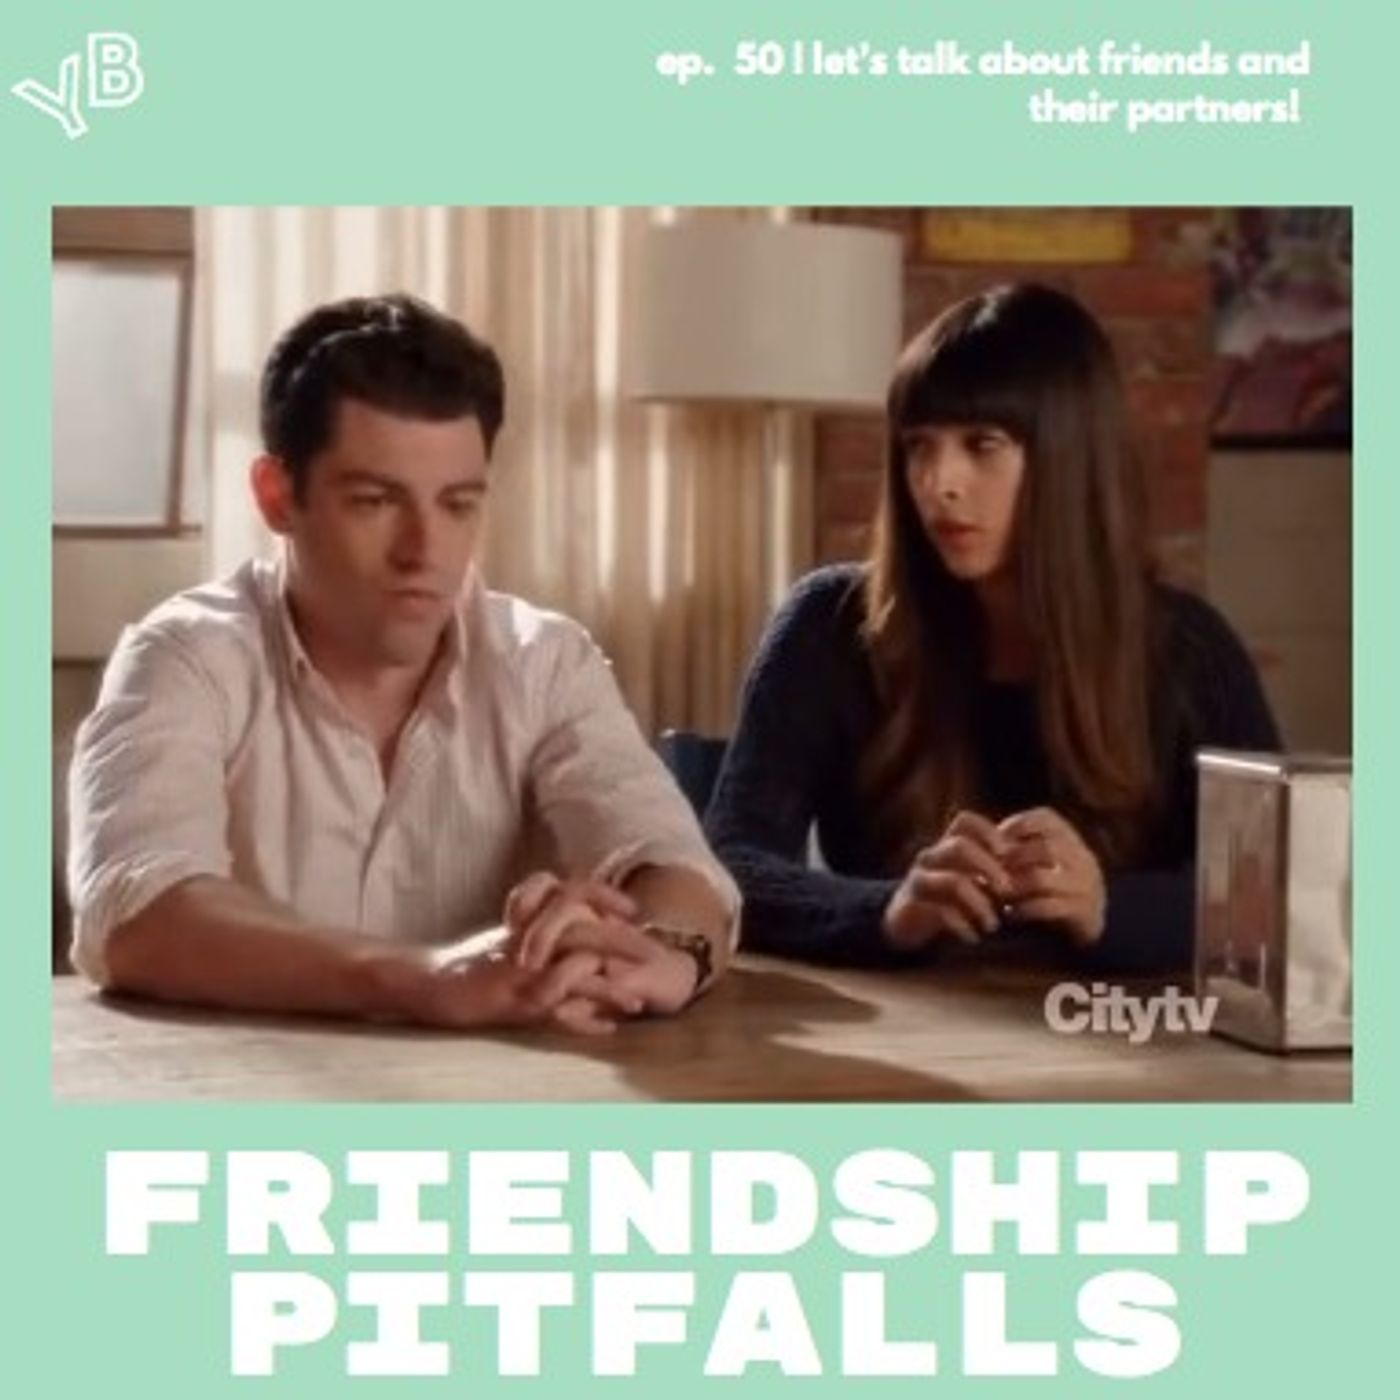 50   Let's talk about our friends and their partners!